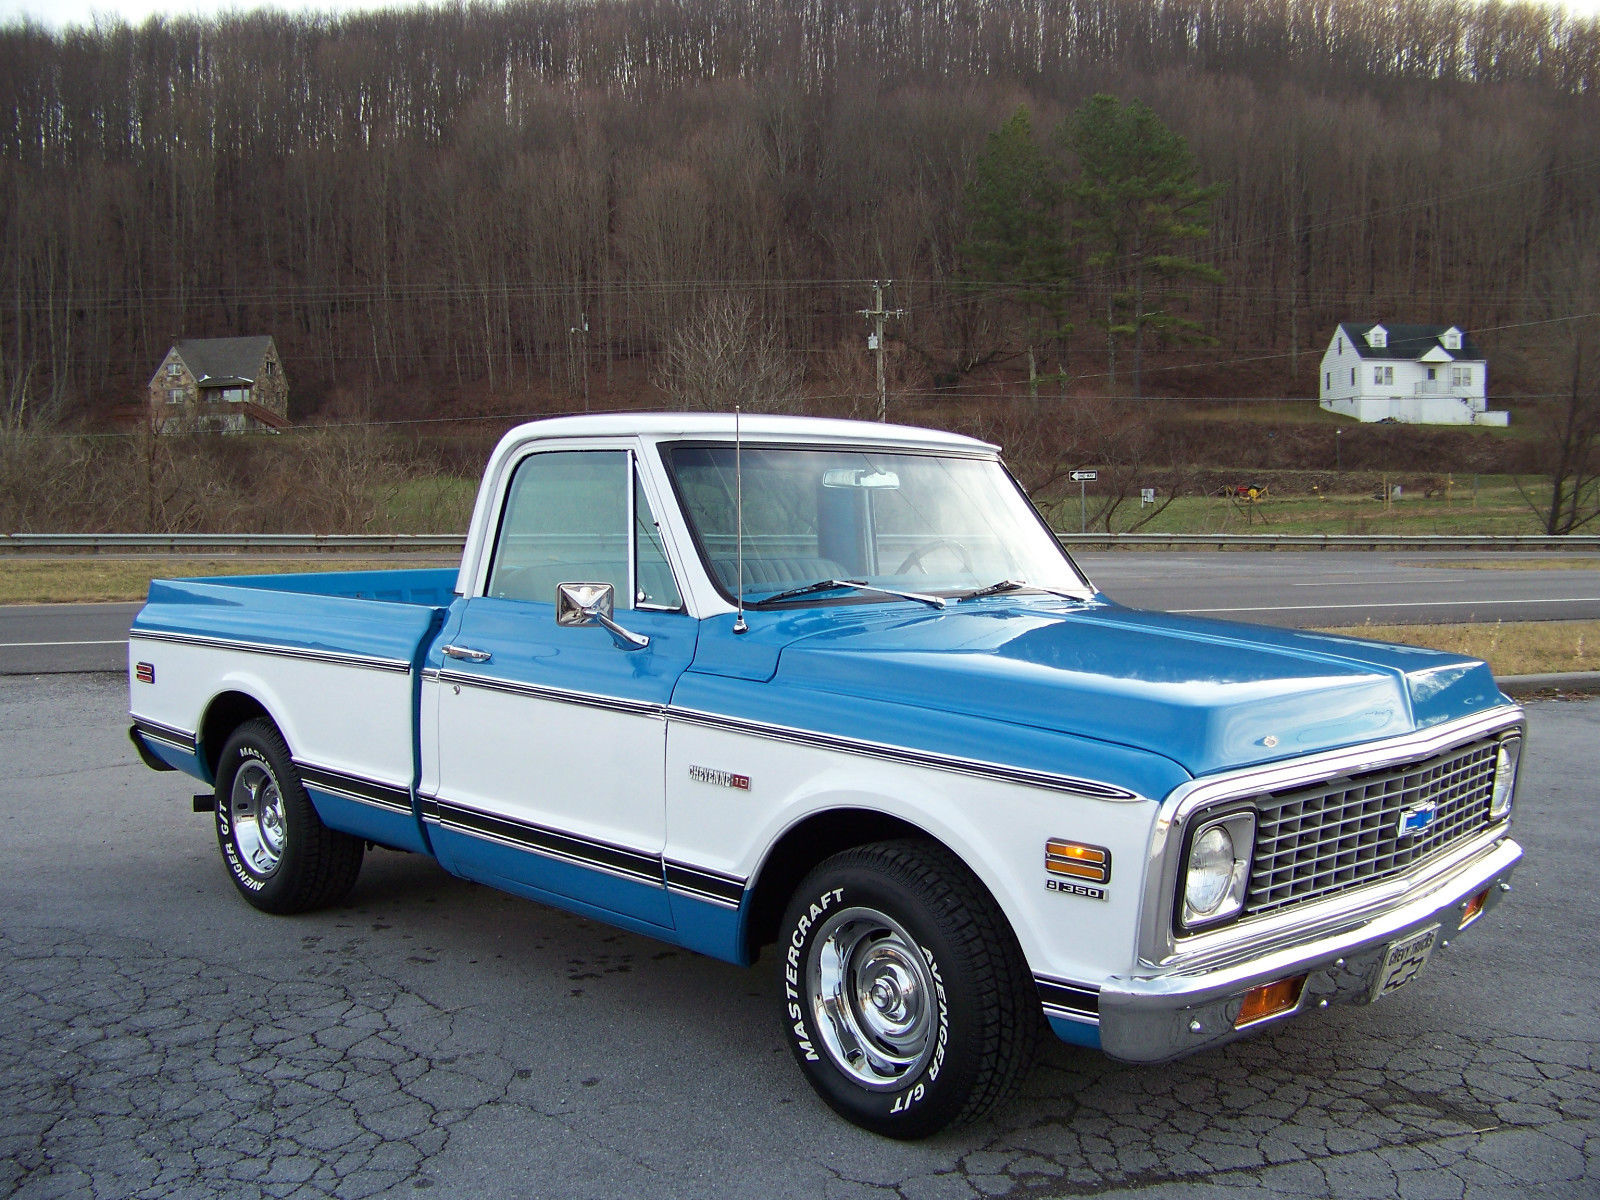 Watch additionally 15868 72 Chevrolet C10 Short Bed 350 Automatic Very Nice together with 67 frame dimensions together with 1977 CHEVROLET SILVERADO 10 181123 further 1972 Chevrolet C10 Super Cheyenne. on 1972 chevy truck c 10 new